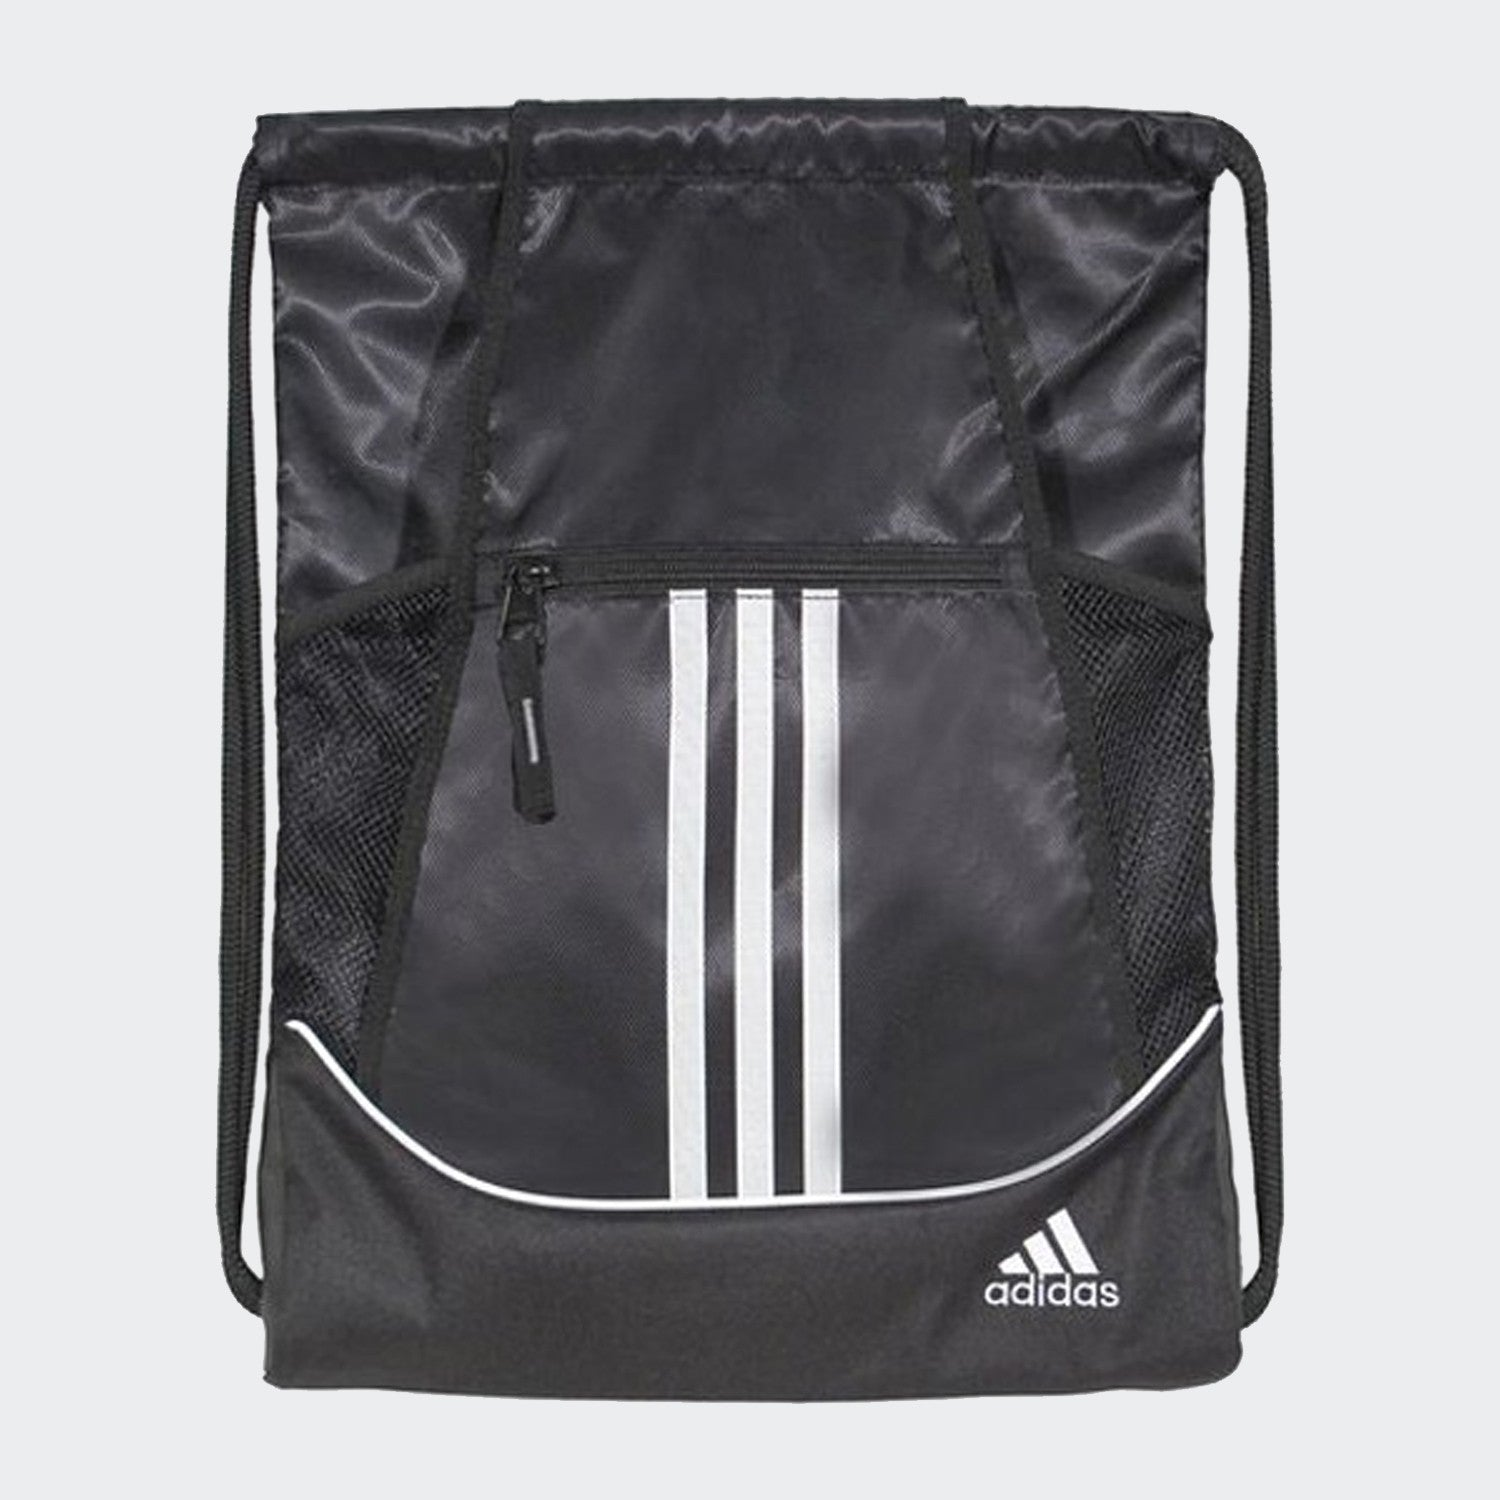 Alliance II Sport Sackpack - Black